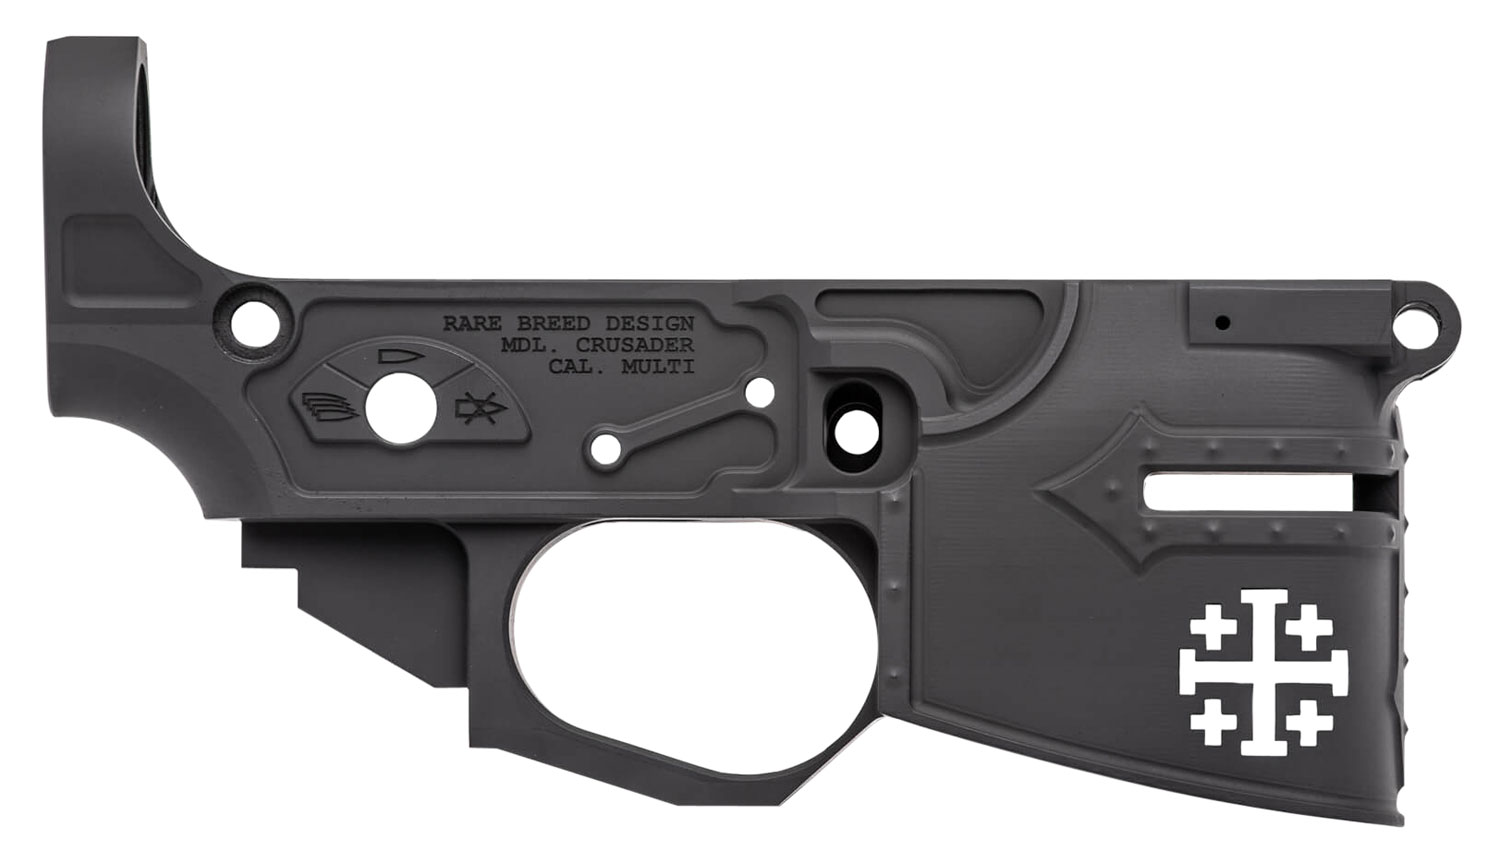 Spikes STLB600 Stripped Lower Rare Breed Crusader  AR Platform Multi-Caliber Black Hard Coat Anodized